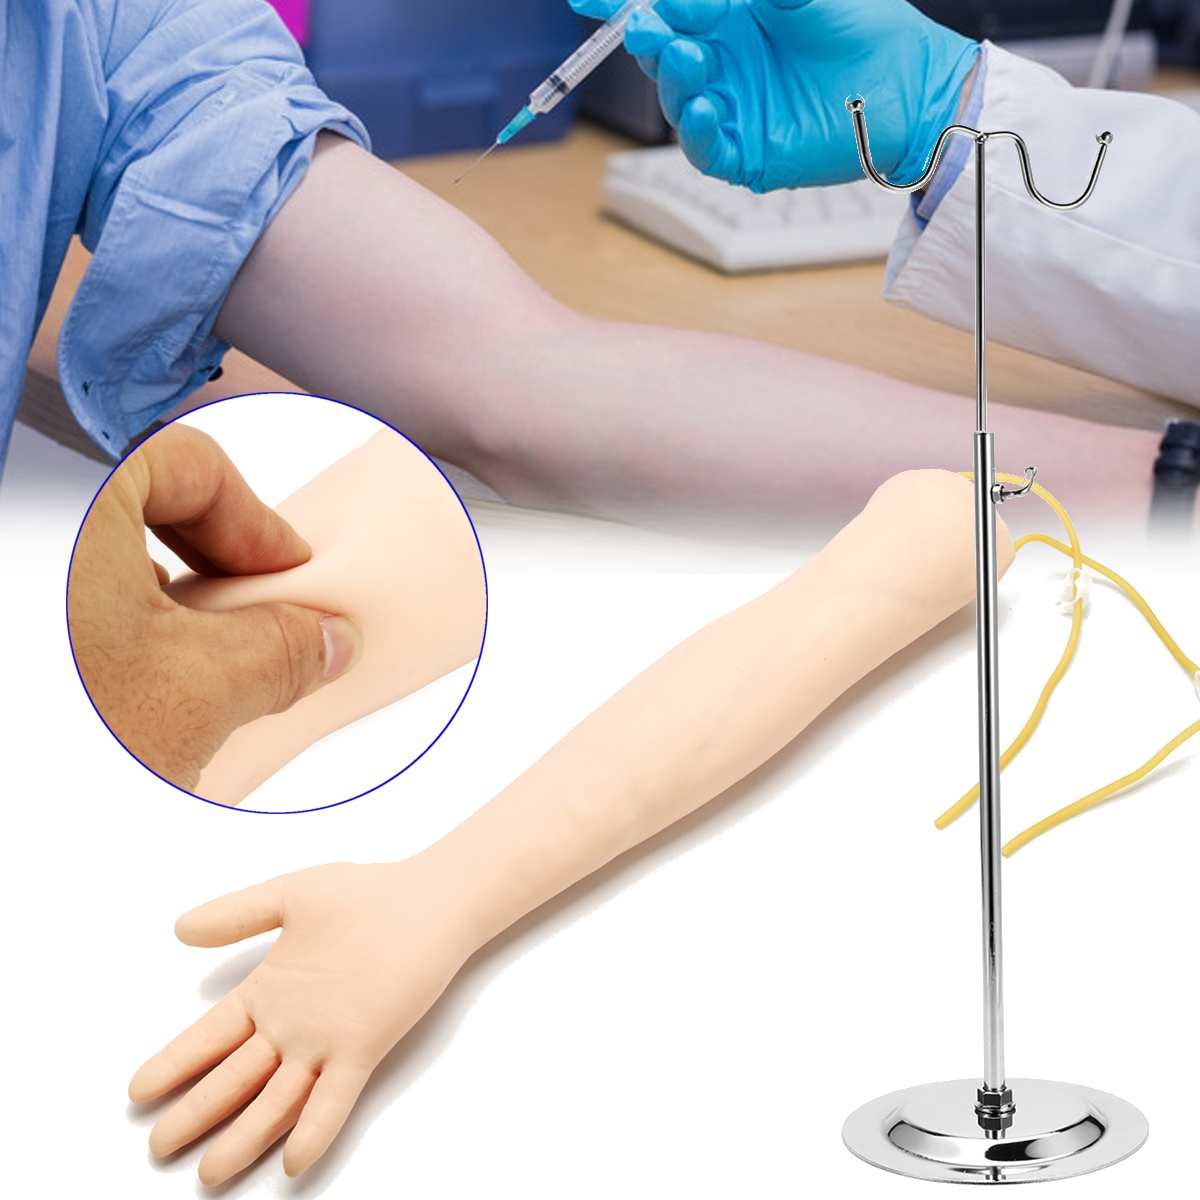 Electronic Anatomical IV Phlebotomy Venipuncture Practice Arm Anatomy Injection Practice Medical Simulator Nurse Training Kit